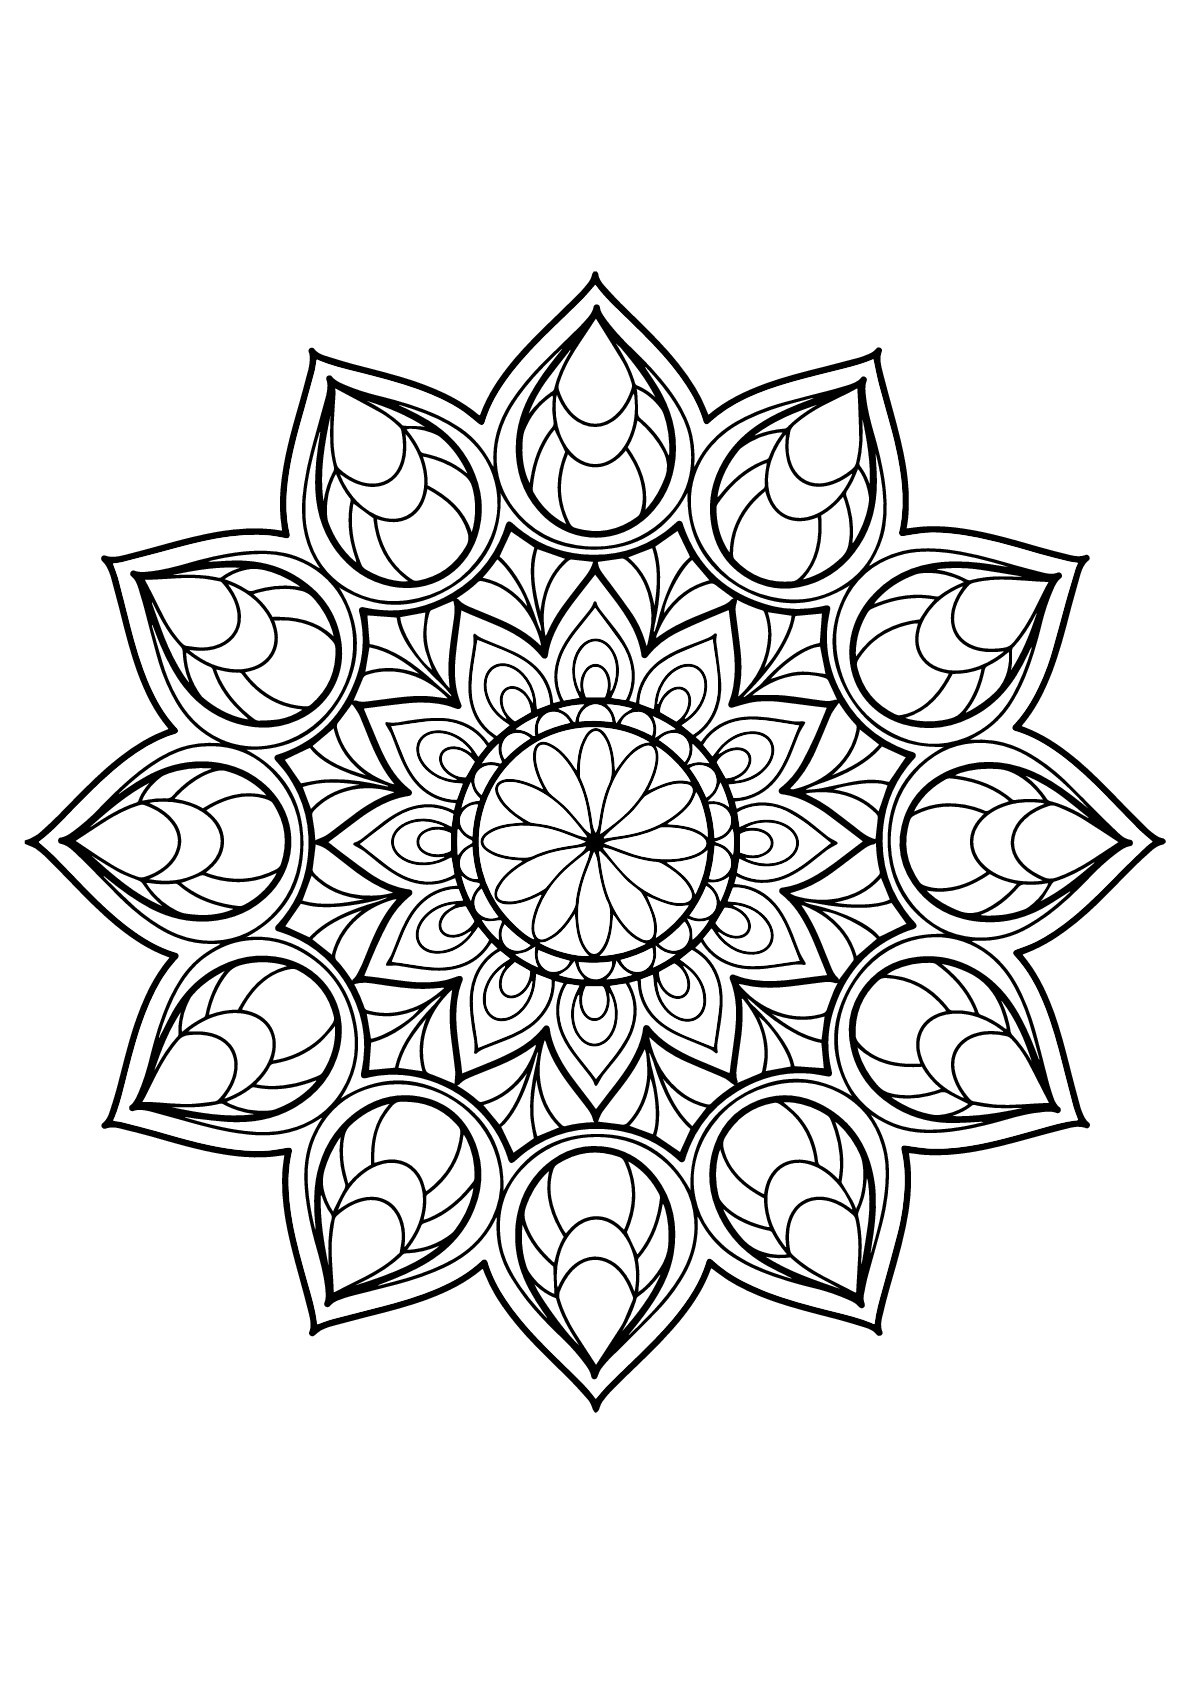 Mandalas free to color for kids - Mandalas Kids Coloring Pages | free printable mandala coloring pages for adults easy